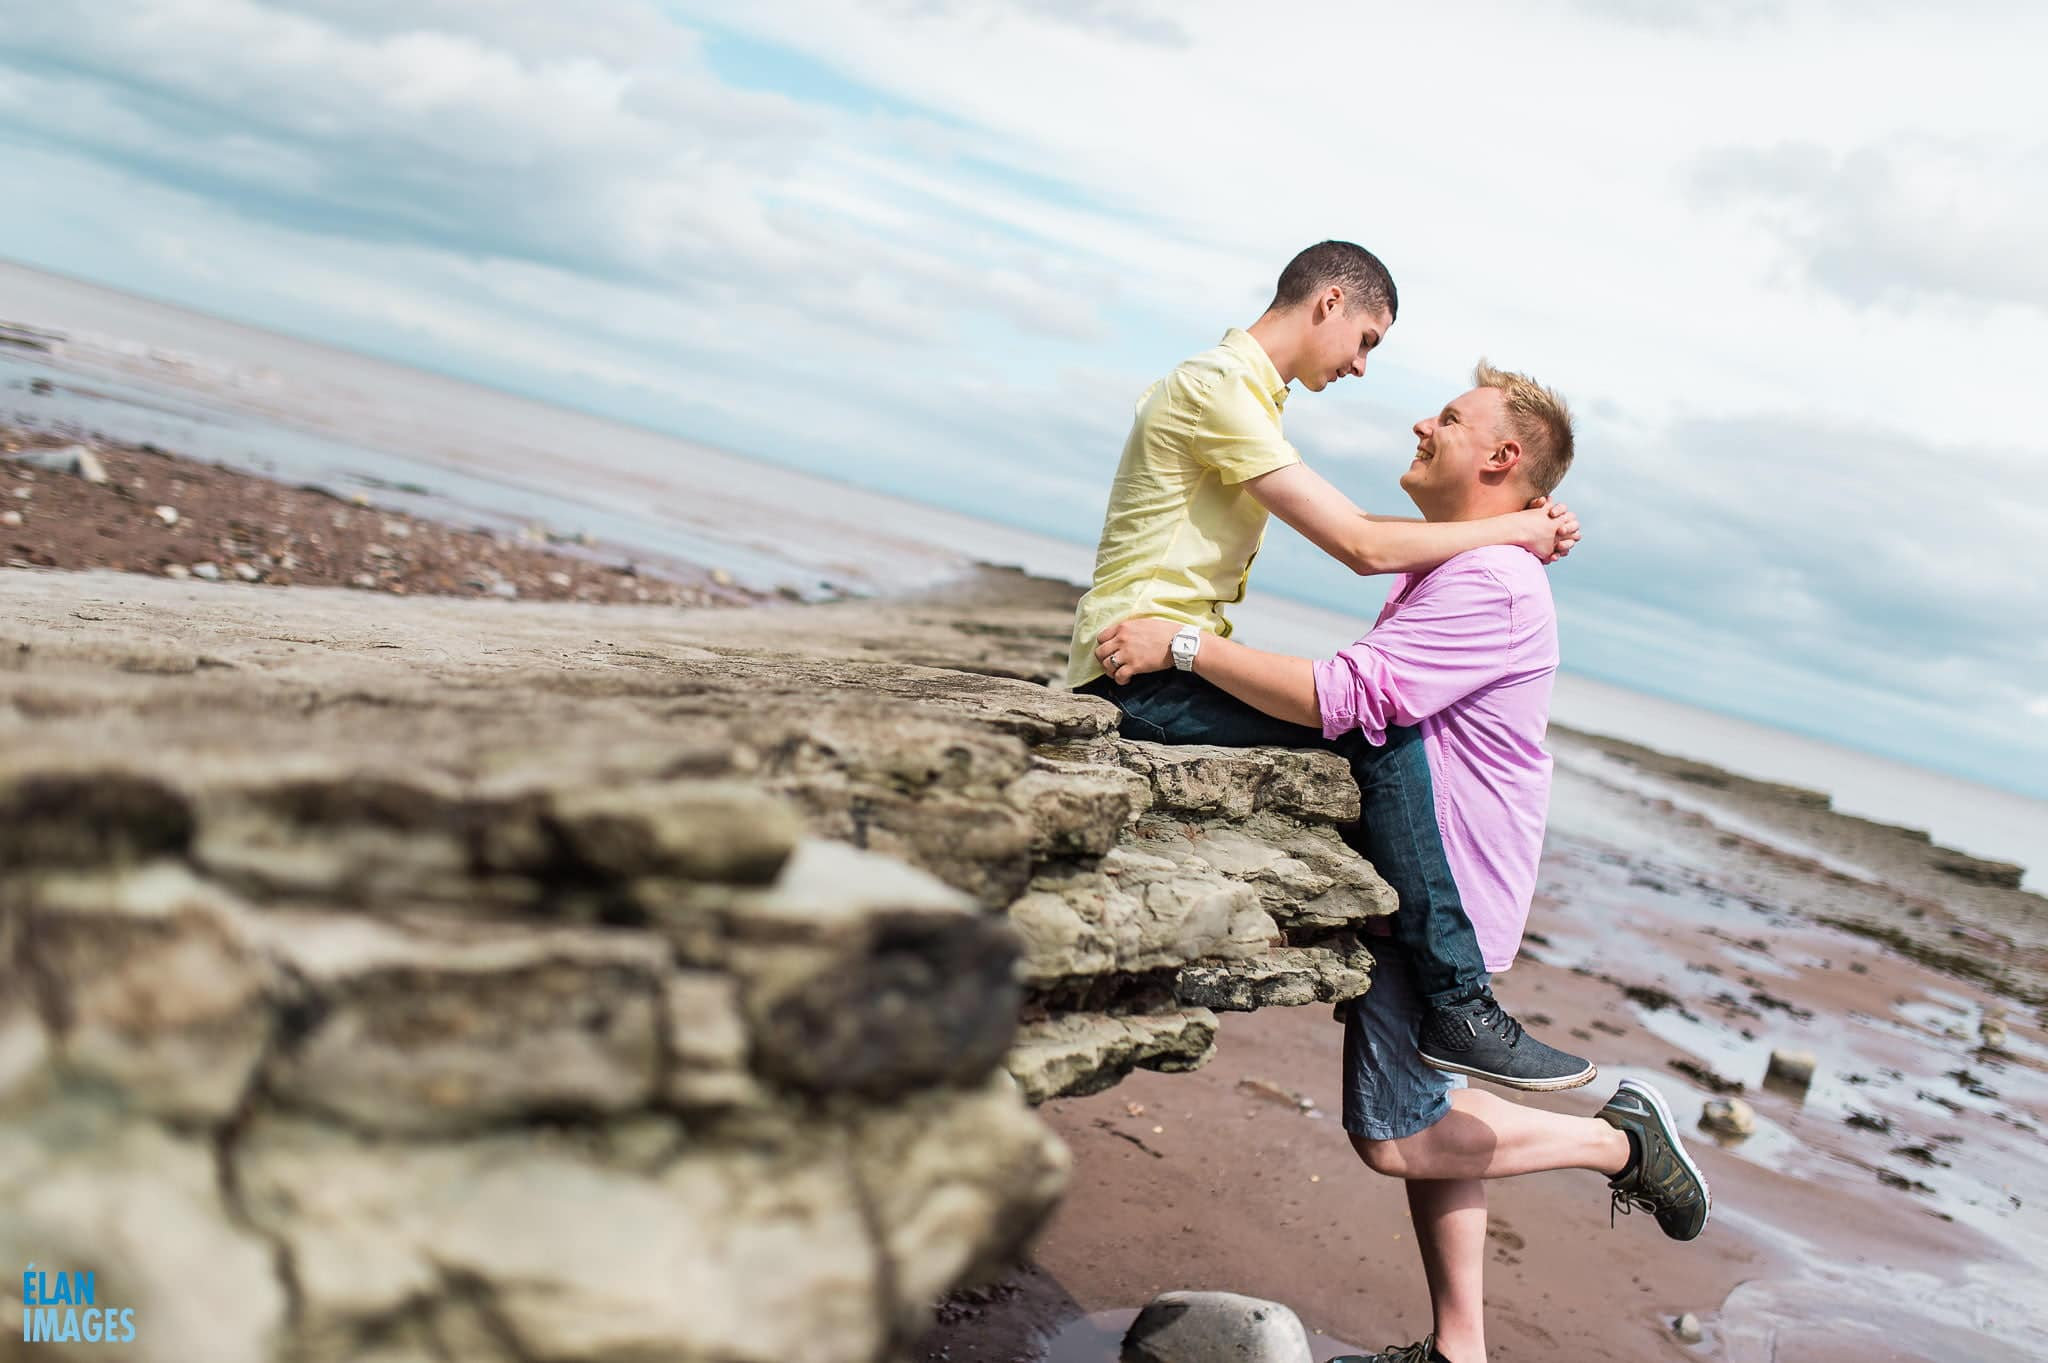 Engagement photo shoot at St Audrie's Bay, Devon 28